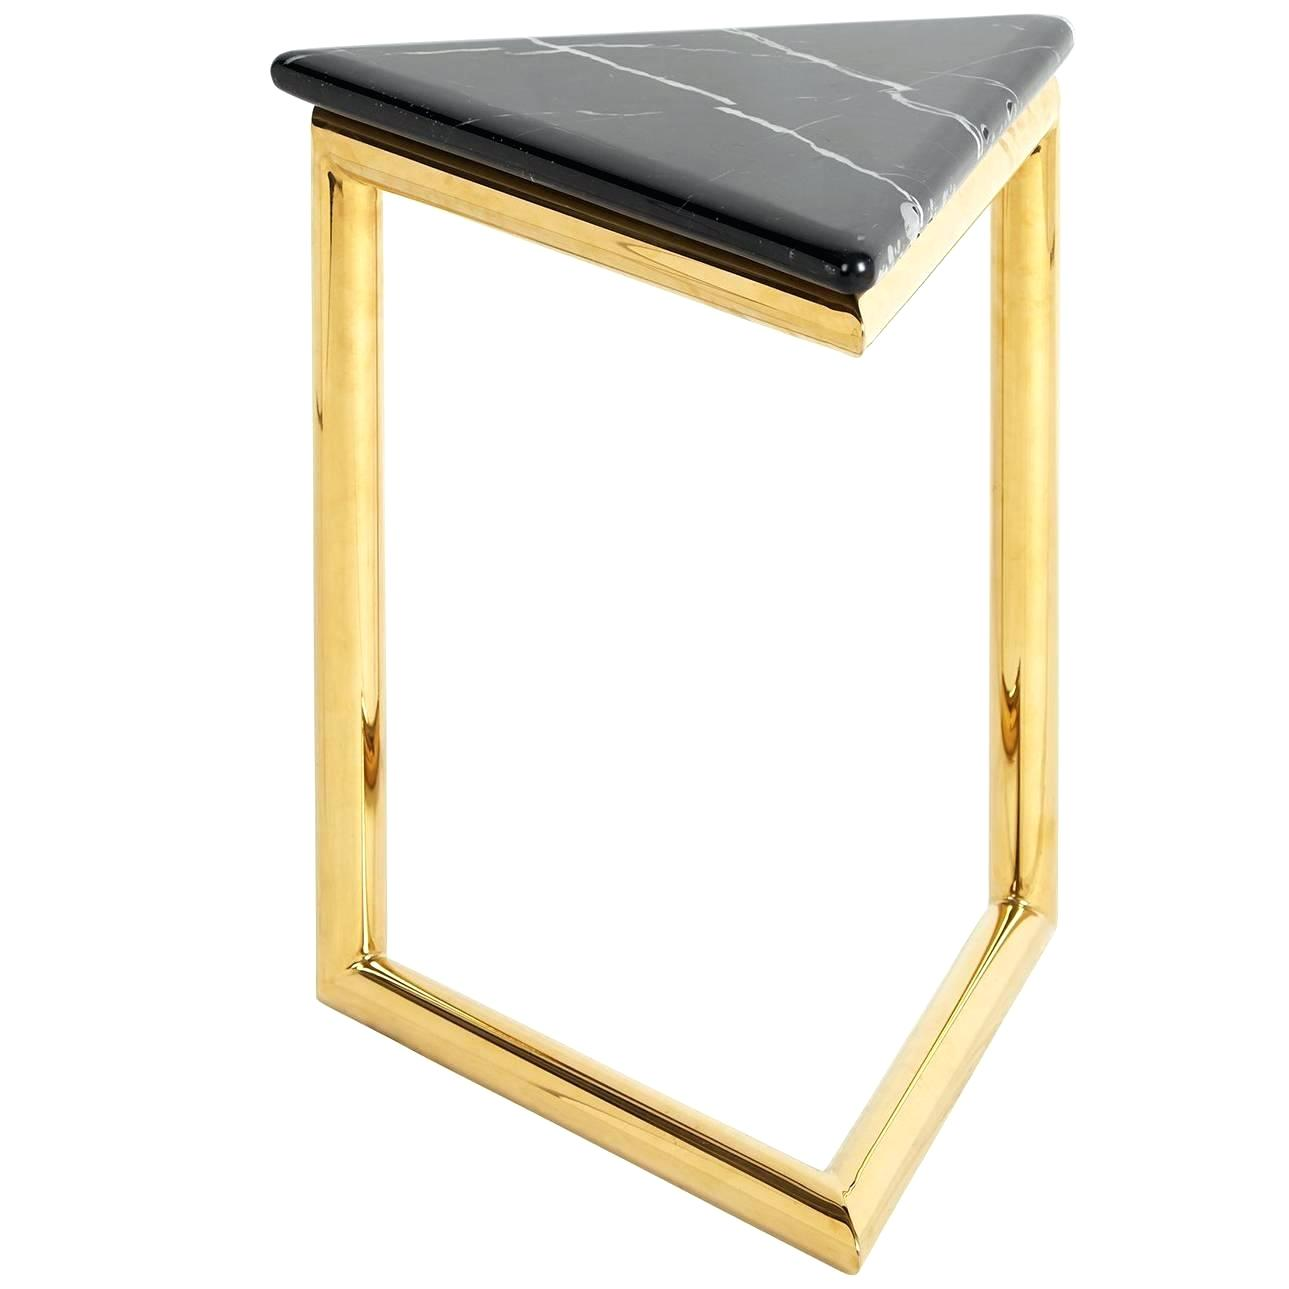 marble accent table white and gold small ultra triangle brass for threshold wood top target mid century modern dining room furniture ikea folding pottery barn rattan coffee black